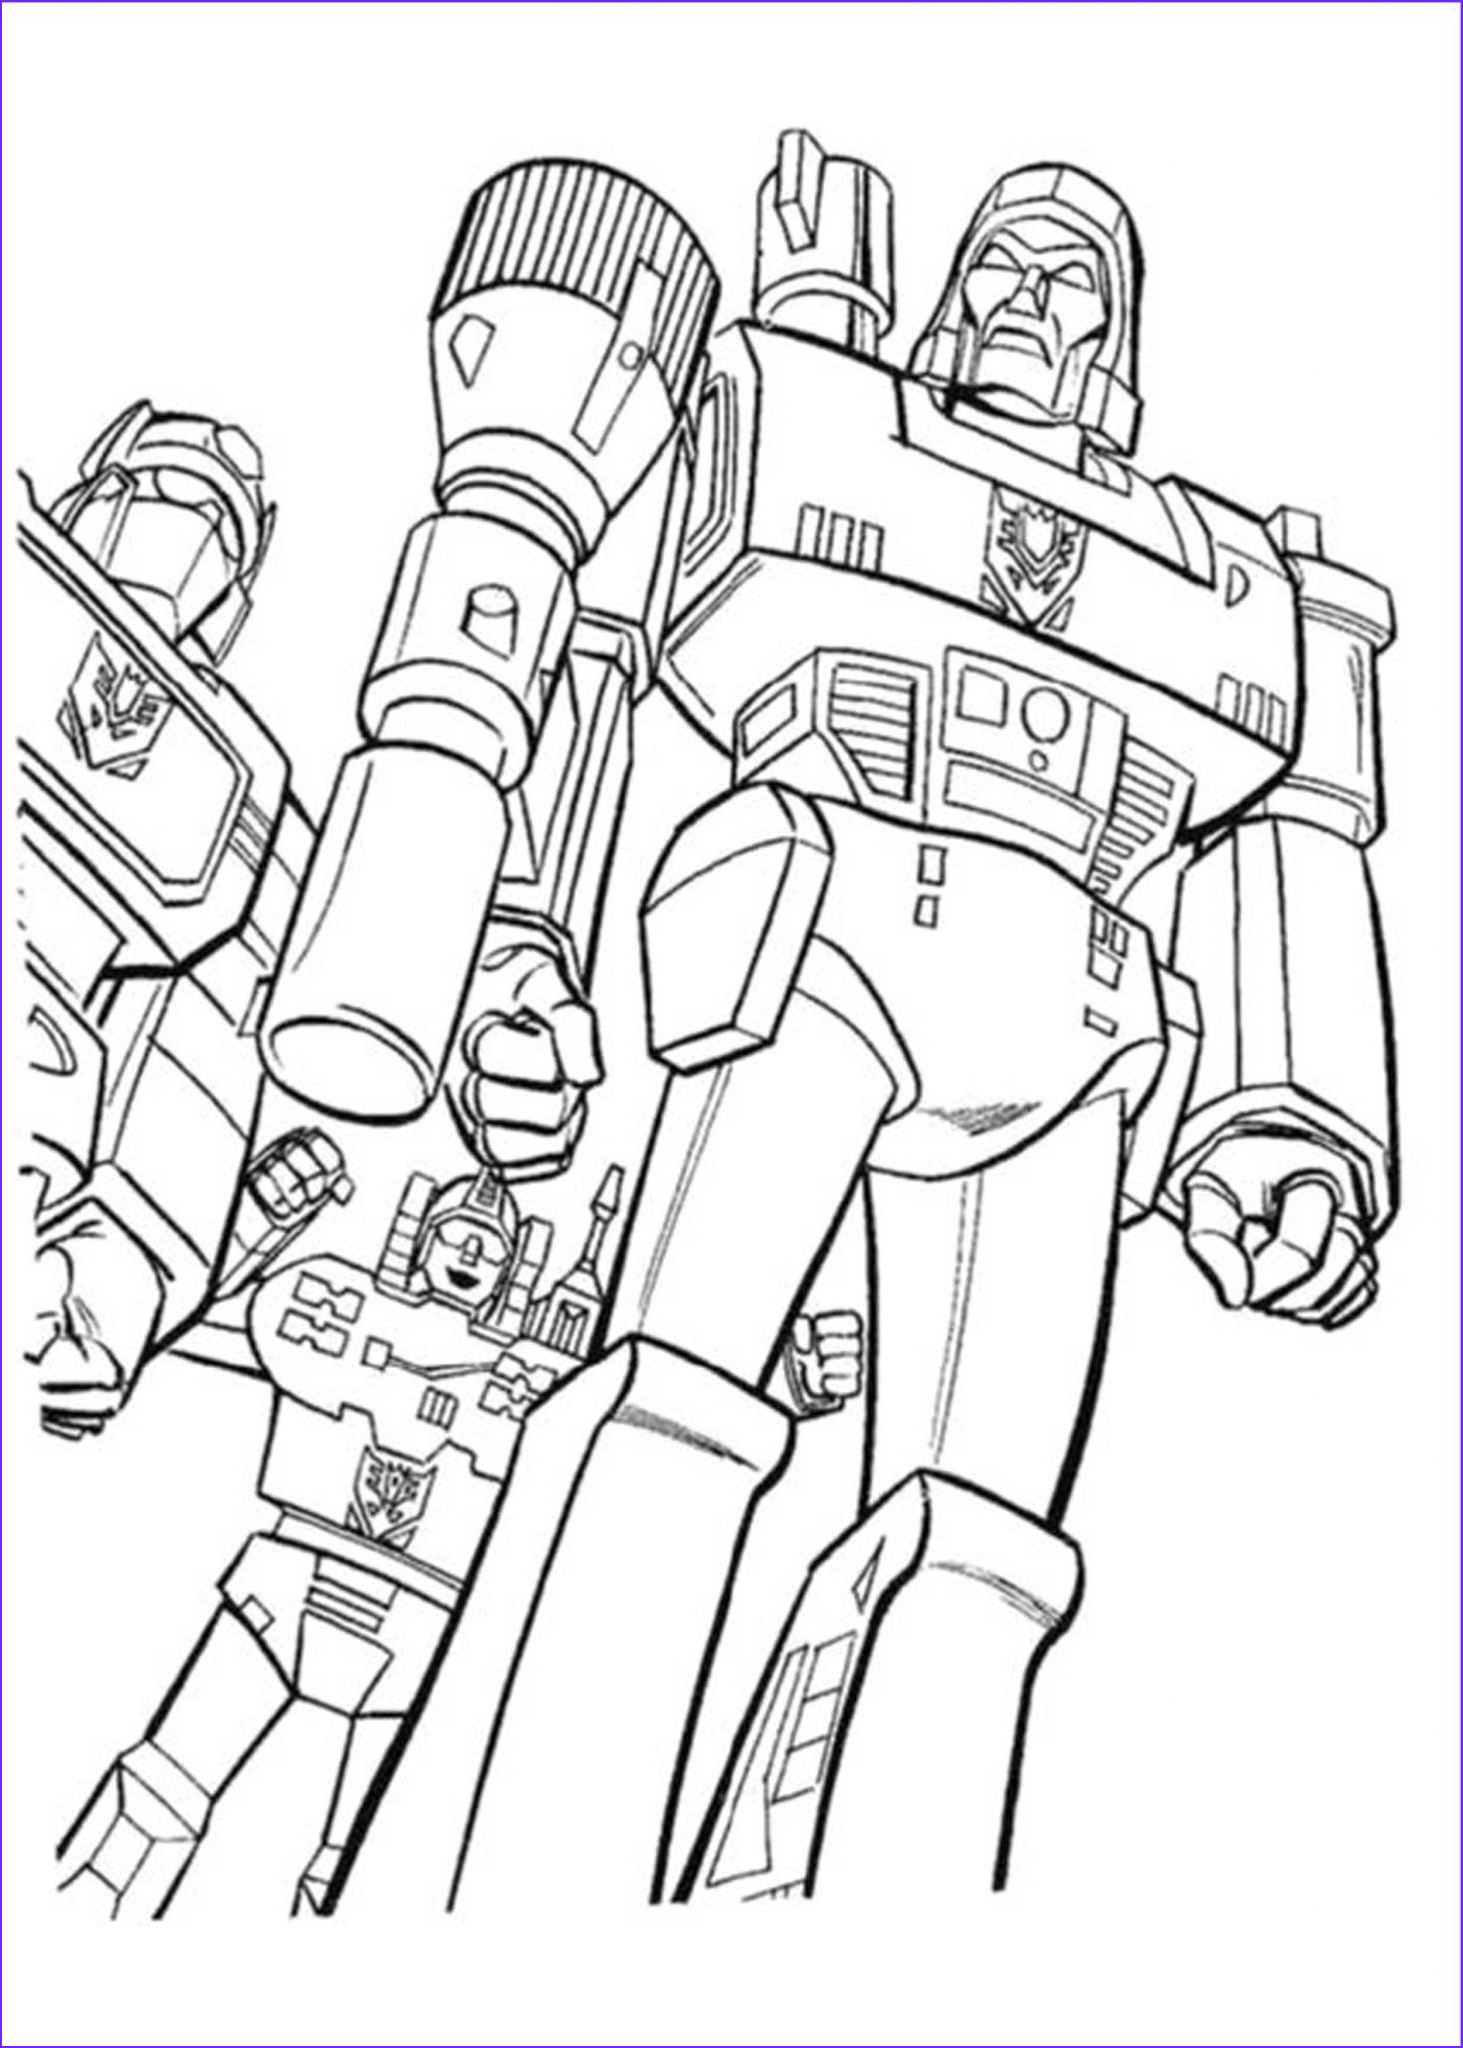 Transformers Coloring Book New Image Print & Download Inviting Kids to Do the Transformers